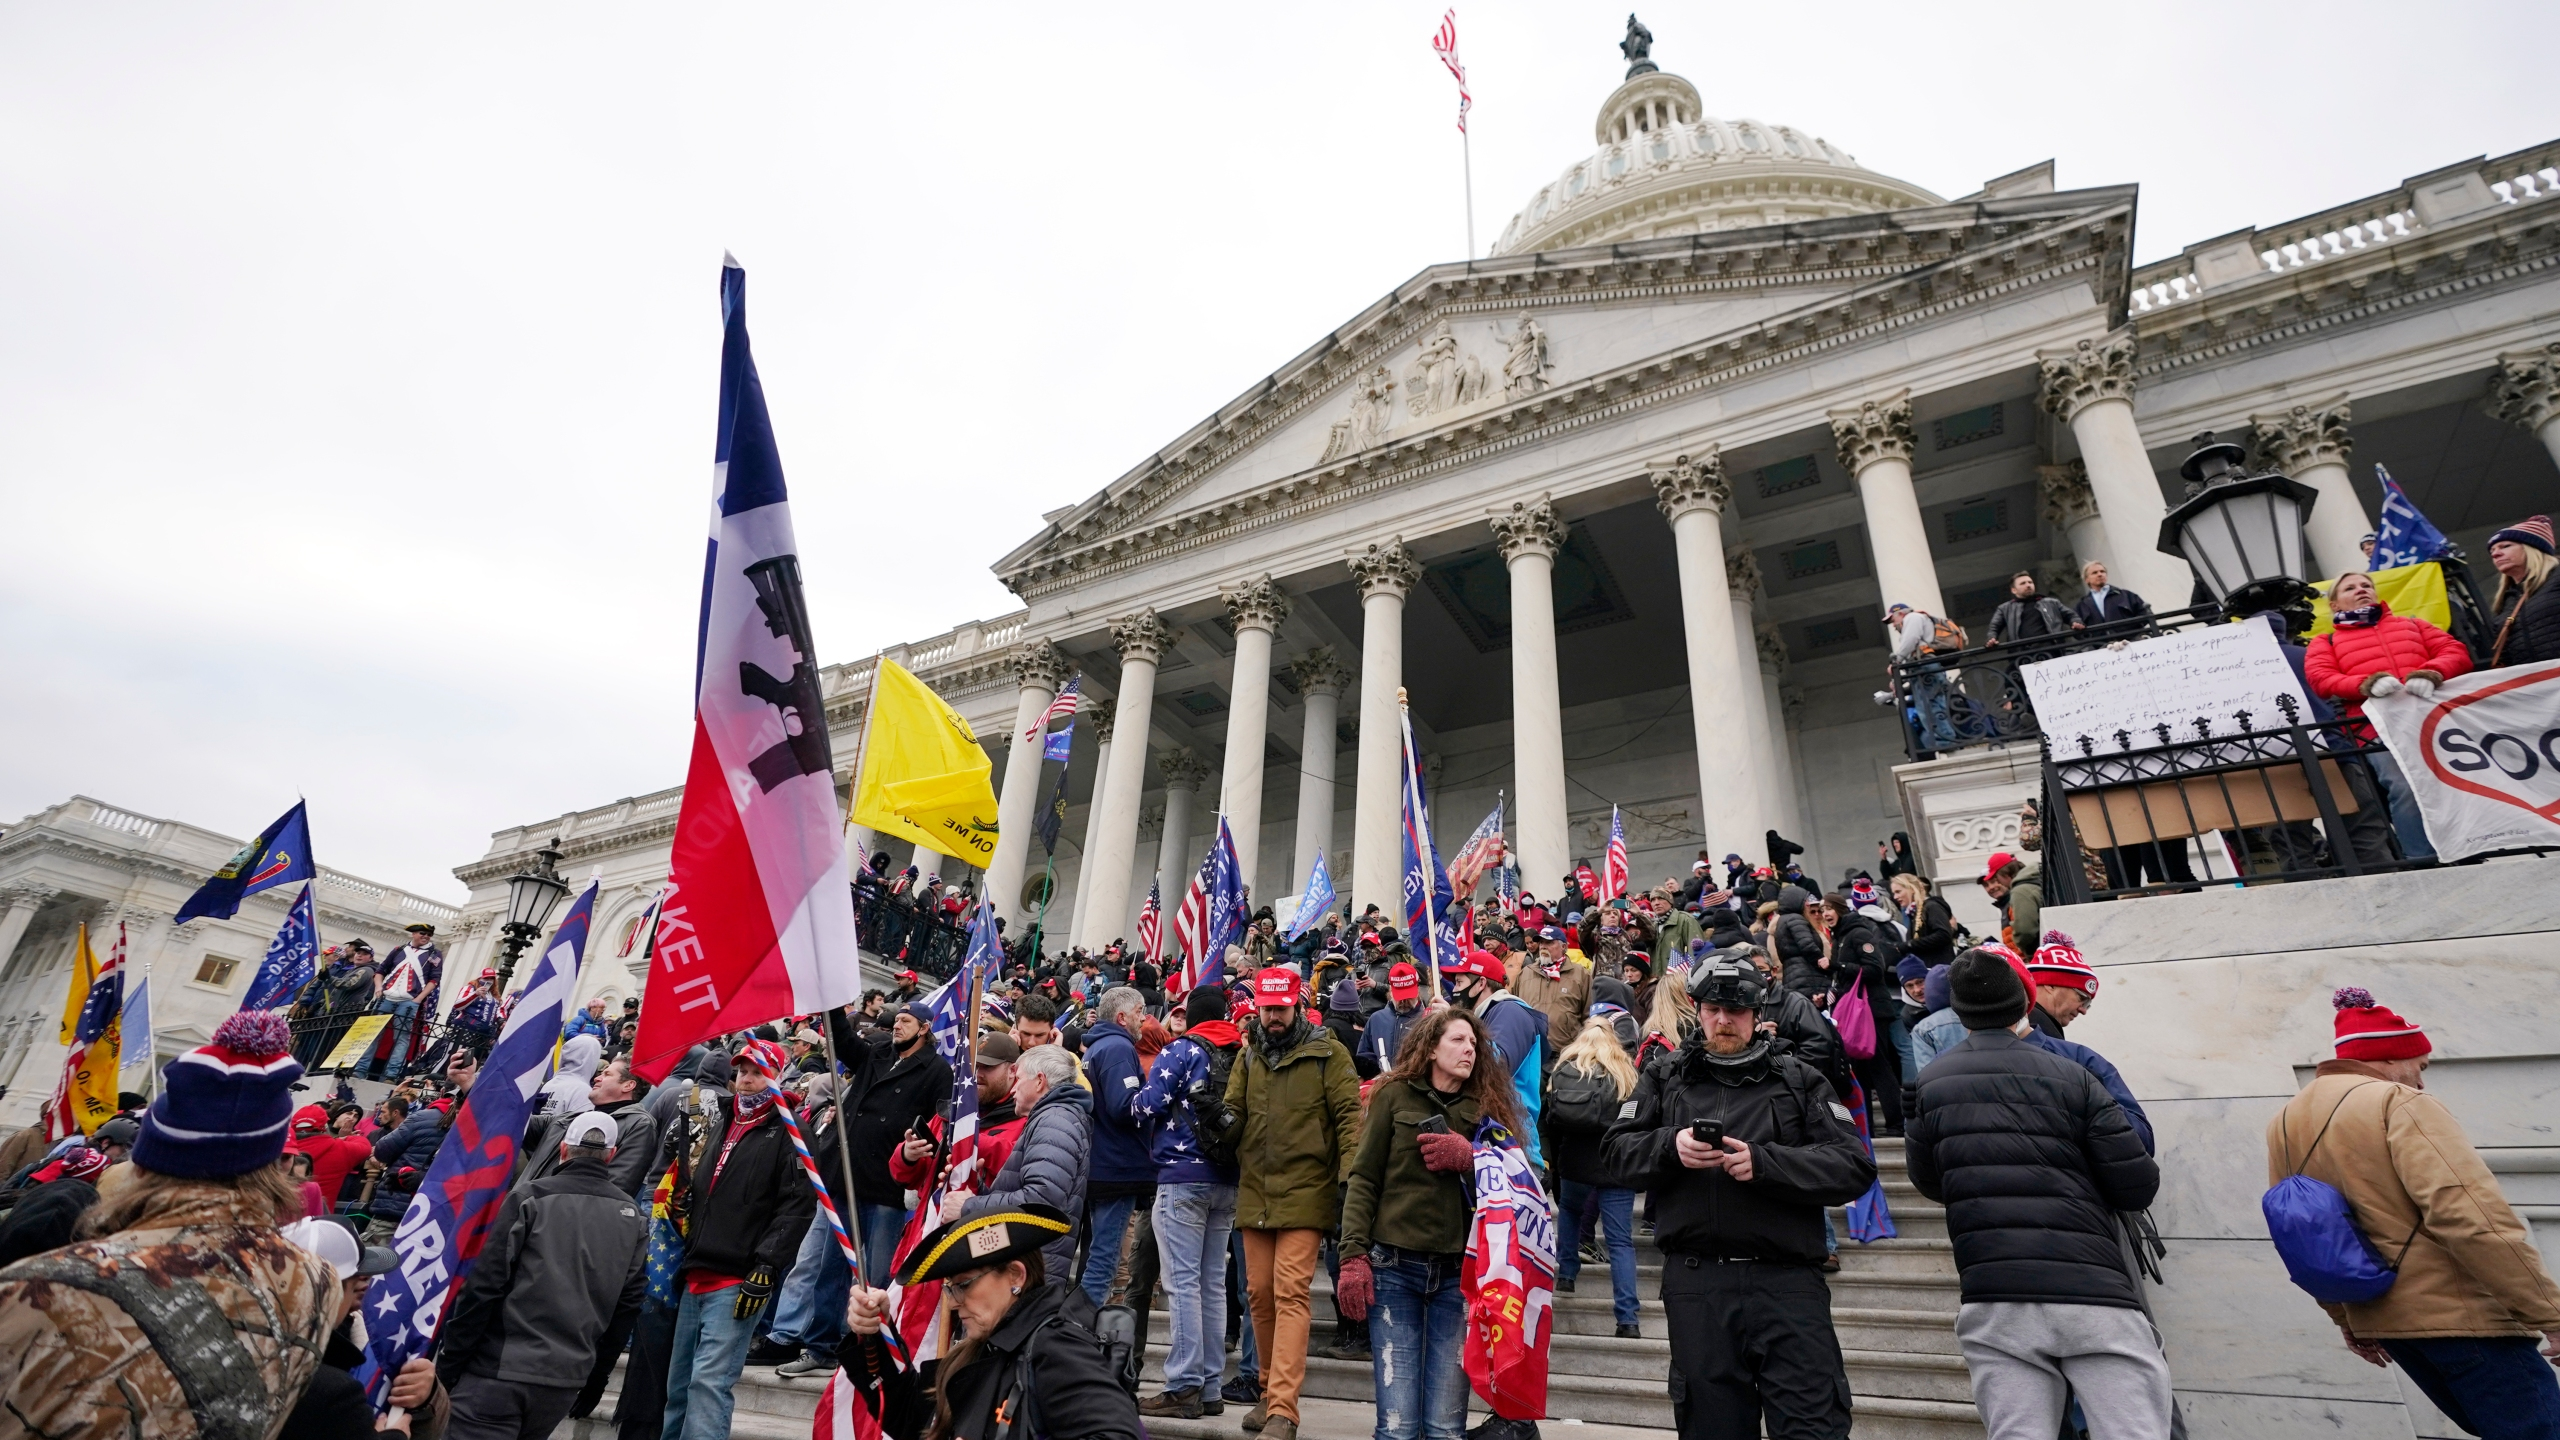 Donald Trump supporters gather outside the Capitol in Washington on Jan. 6, 2021. (Manuel Balce Ceneta / Associated Press)